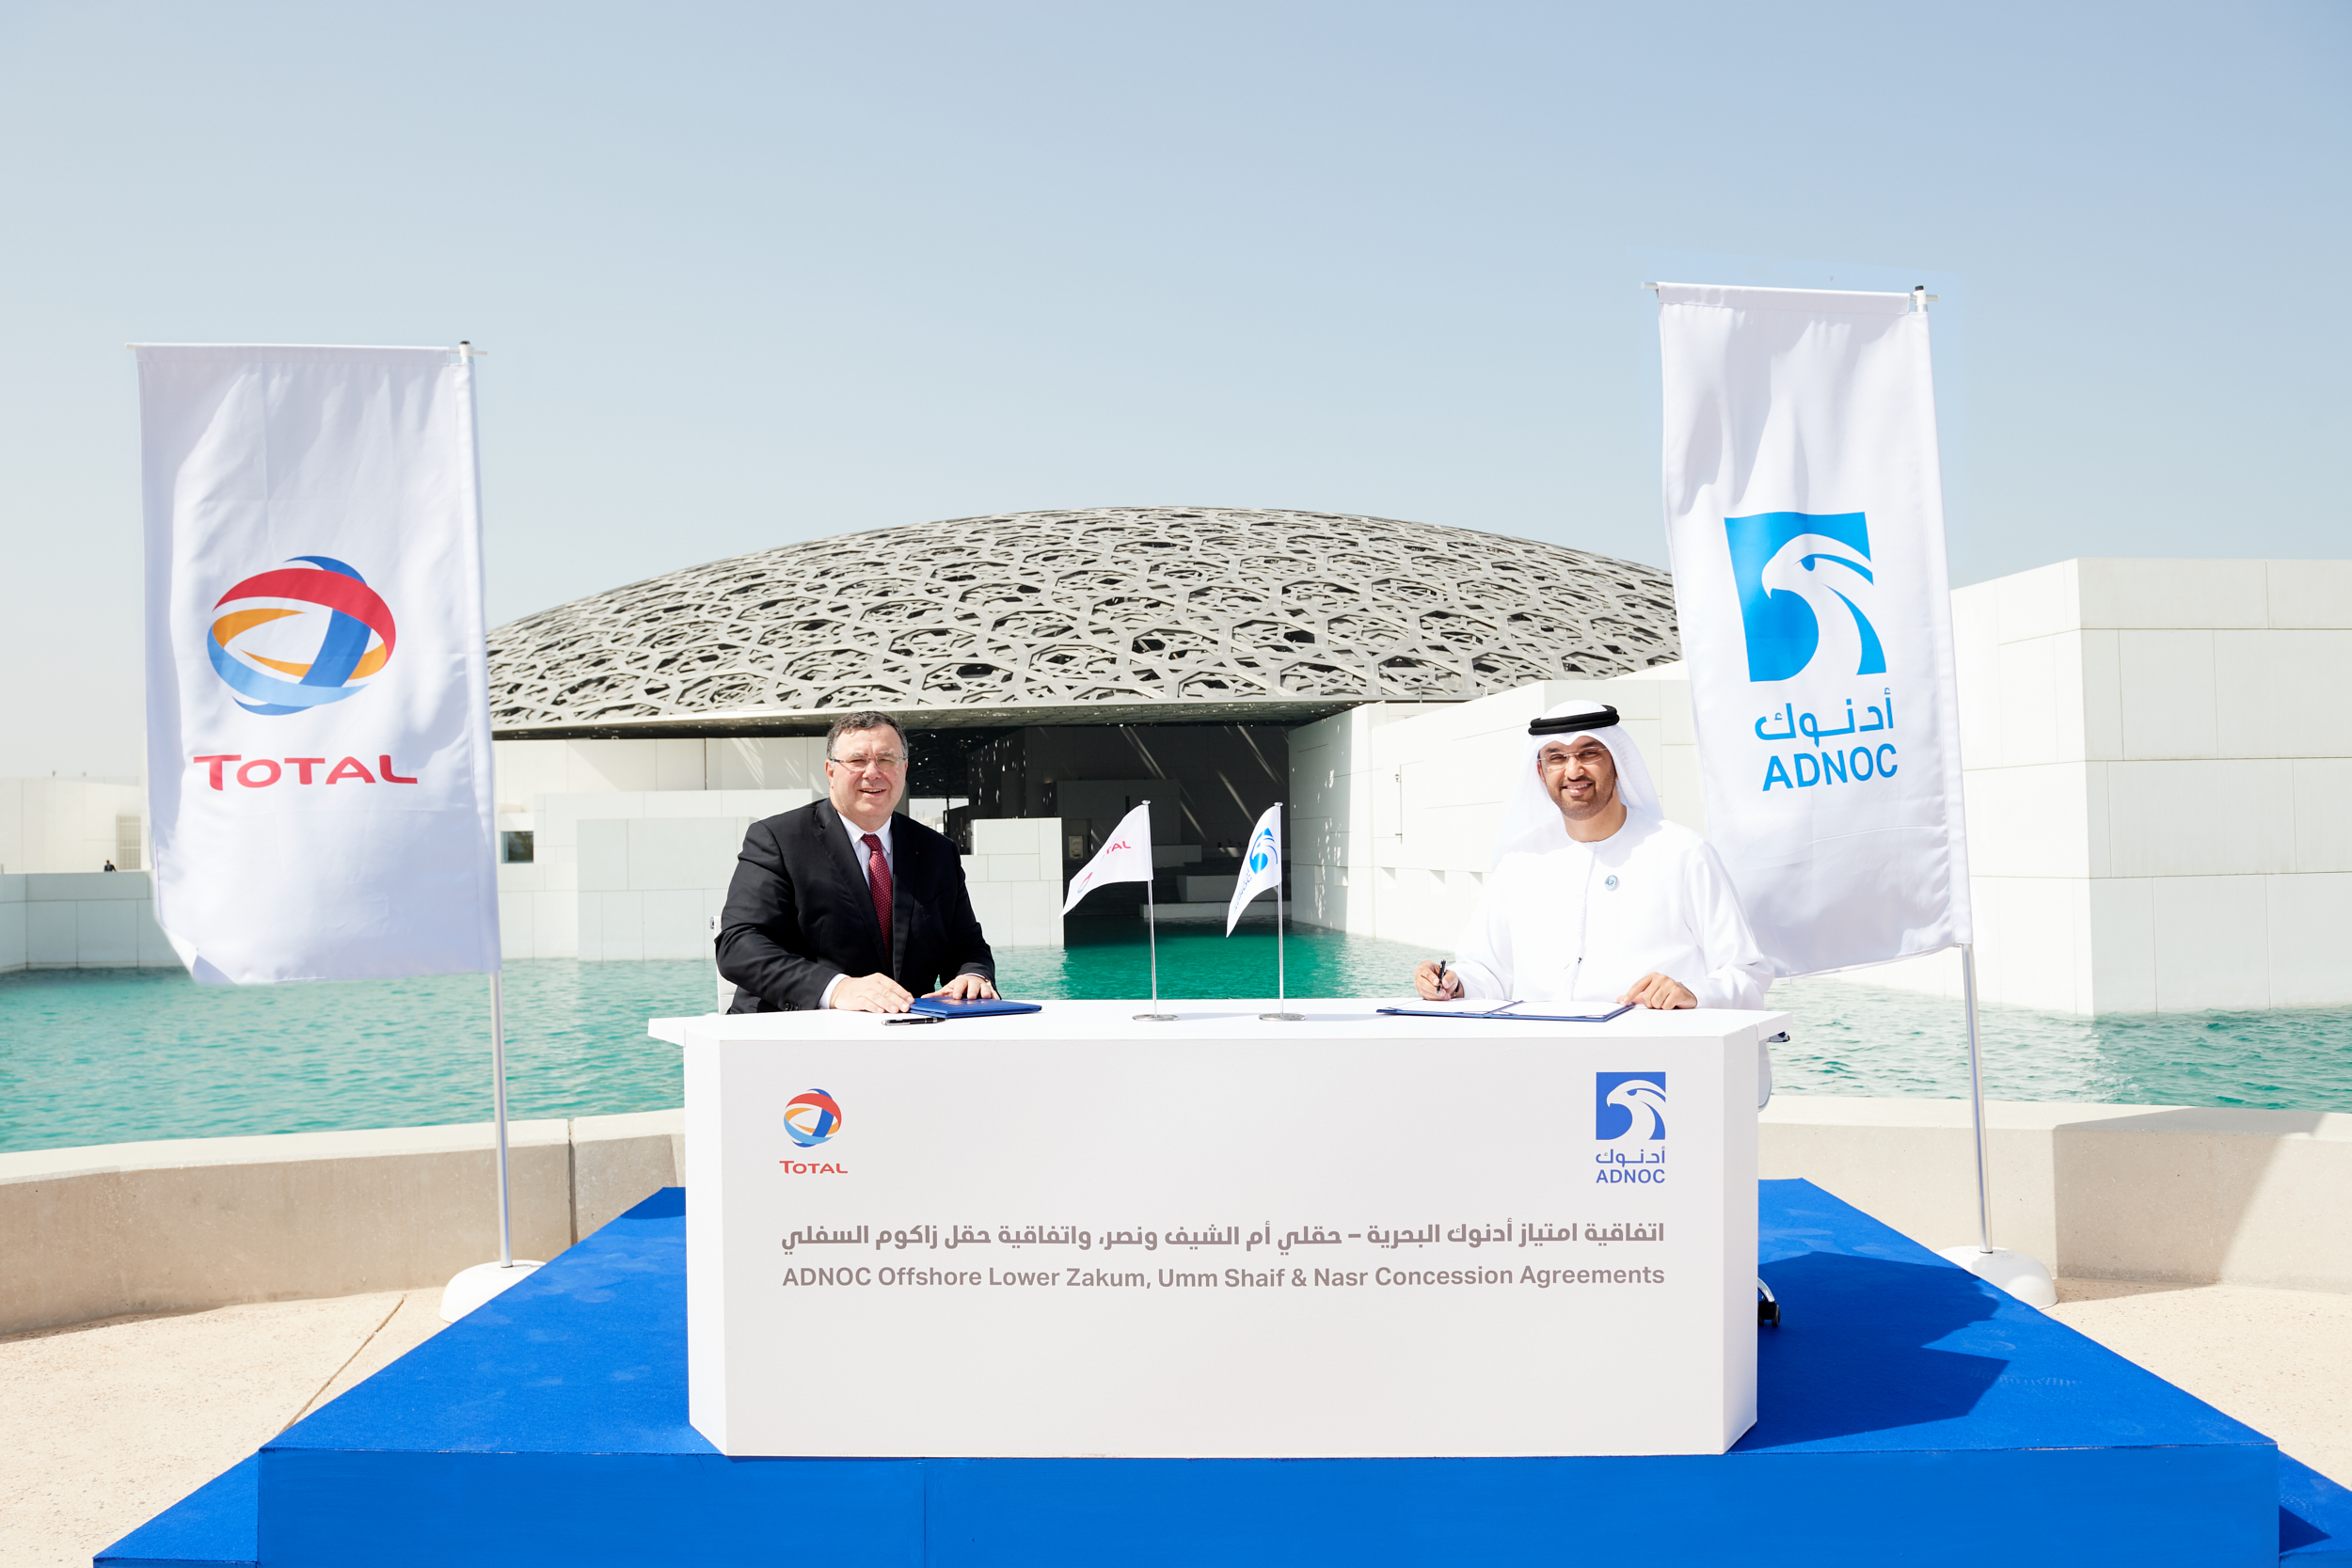 adnoc signs offshore concession agreements with total